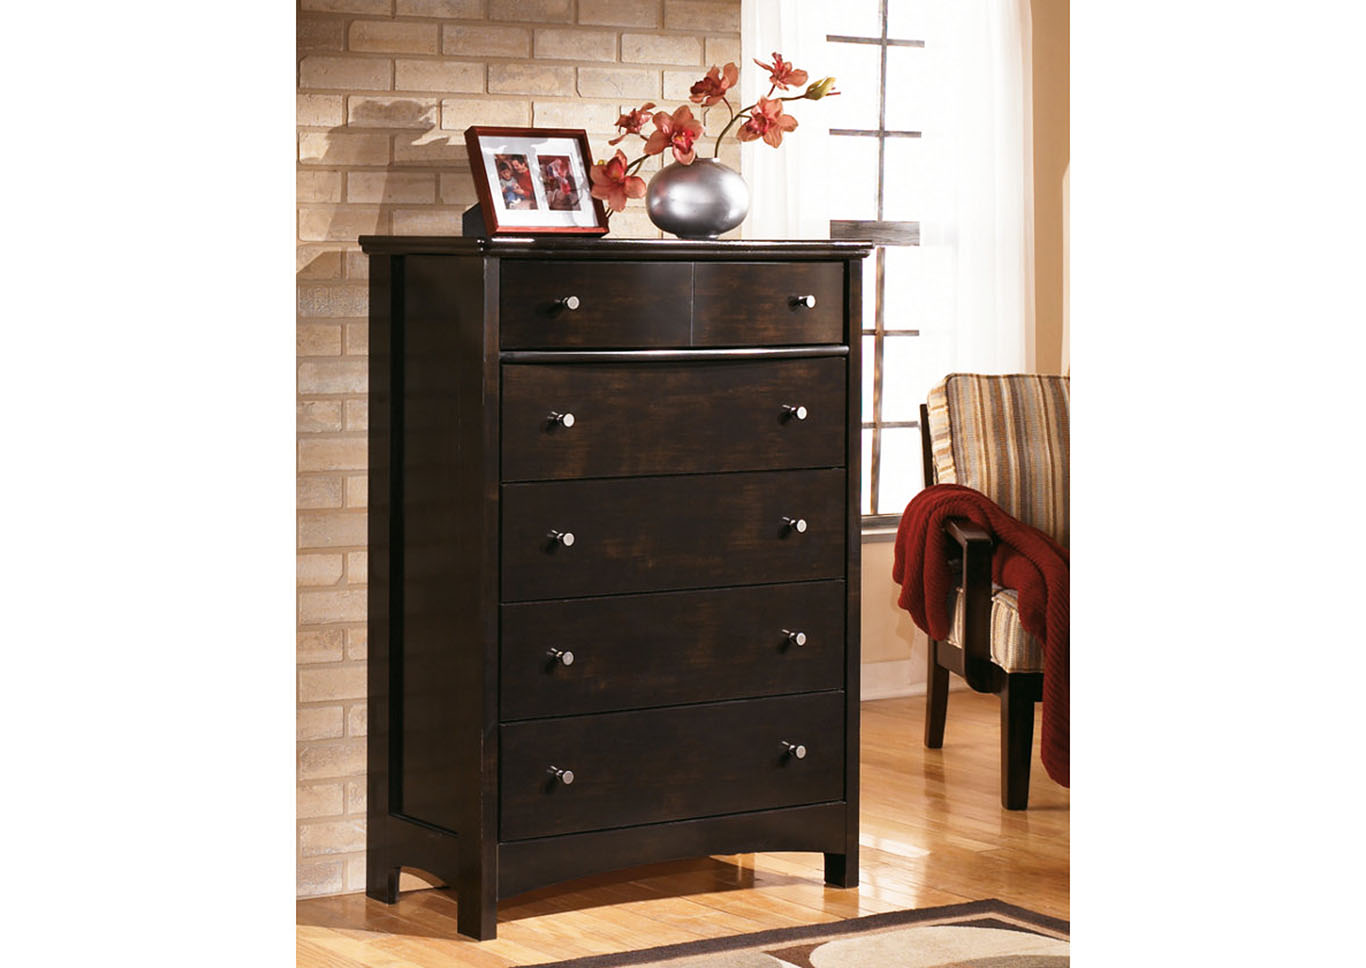 Ware House Furniture Harmony Chest